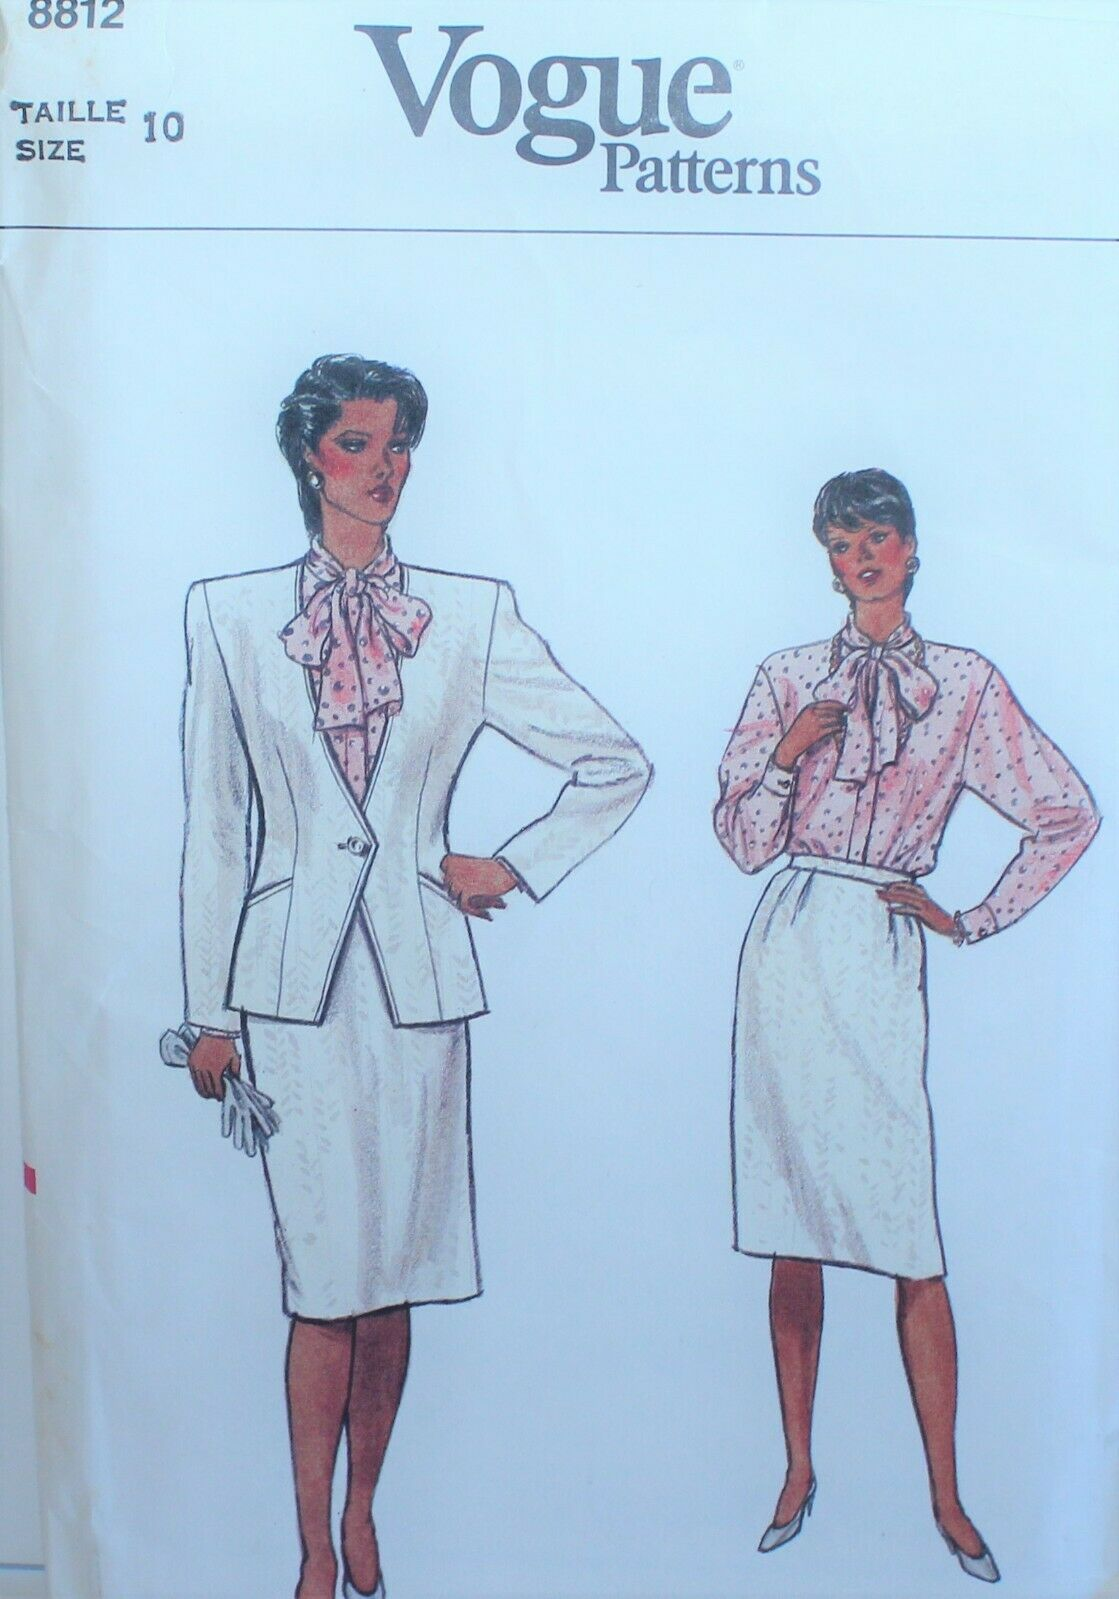 Primary image for Vogue 8812 Sewing Pattern Jacket Skirt Blouse Size 10 Vintage